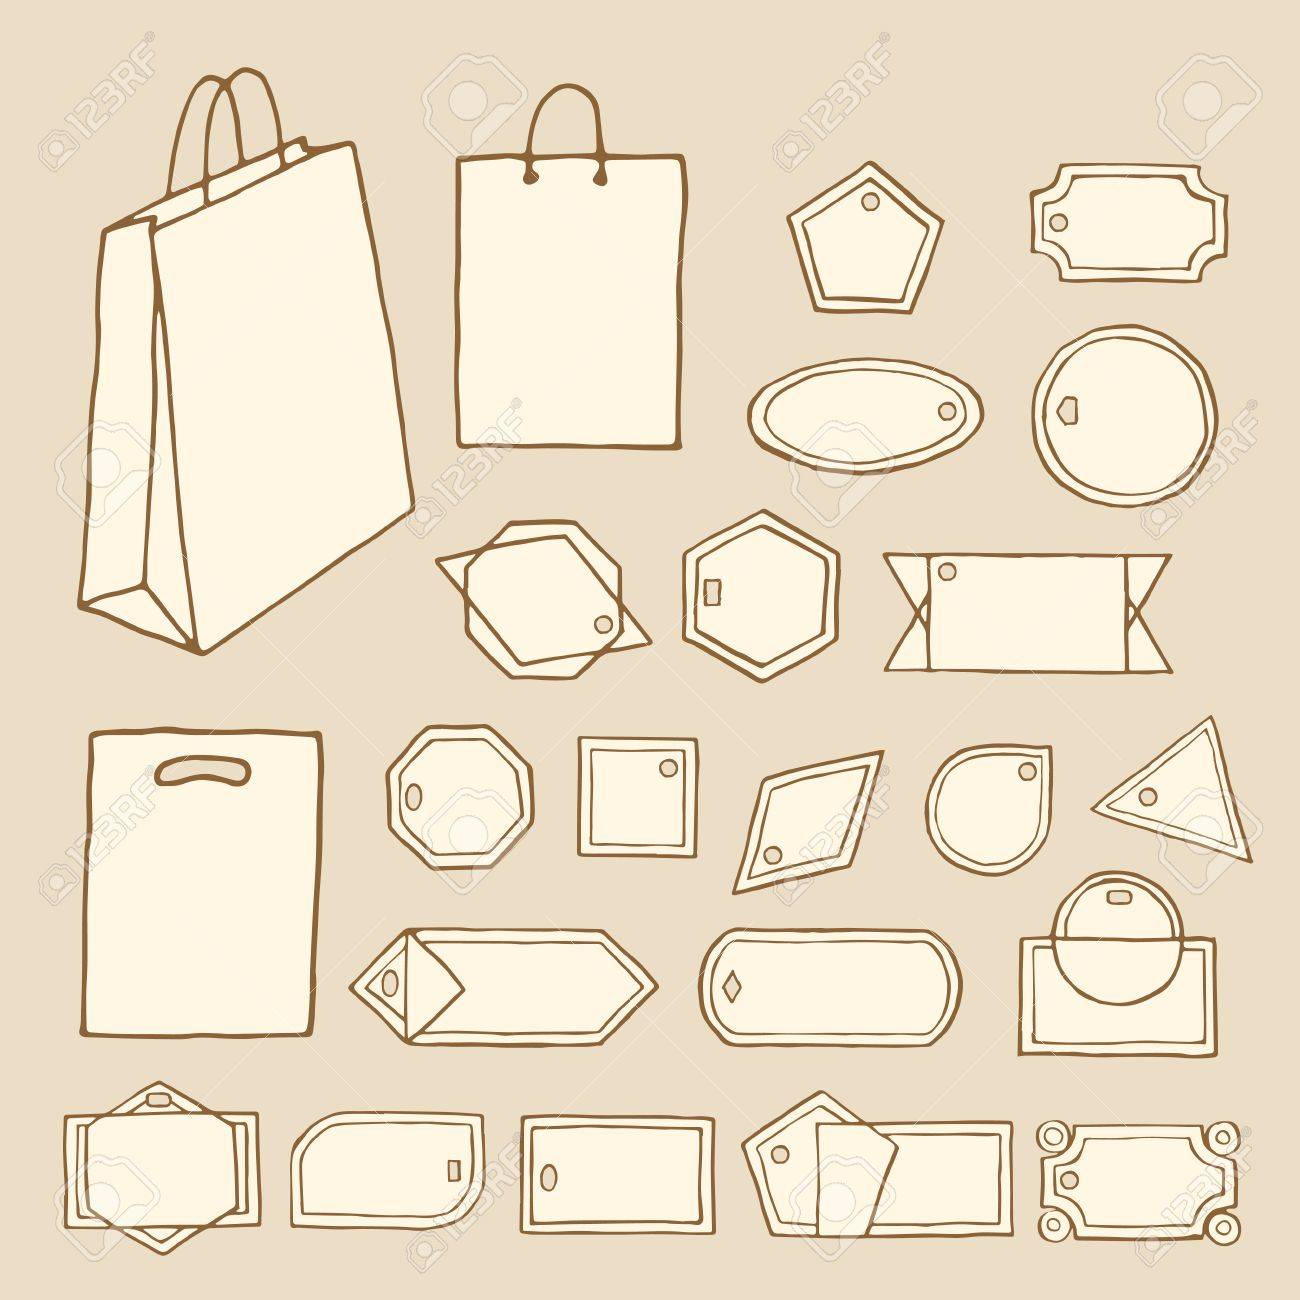 Big Set Of Vintage Vector Tags, Frames, Labels, Shopping Bags ...